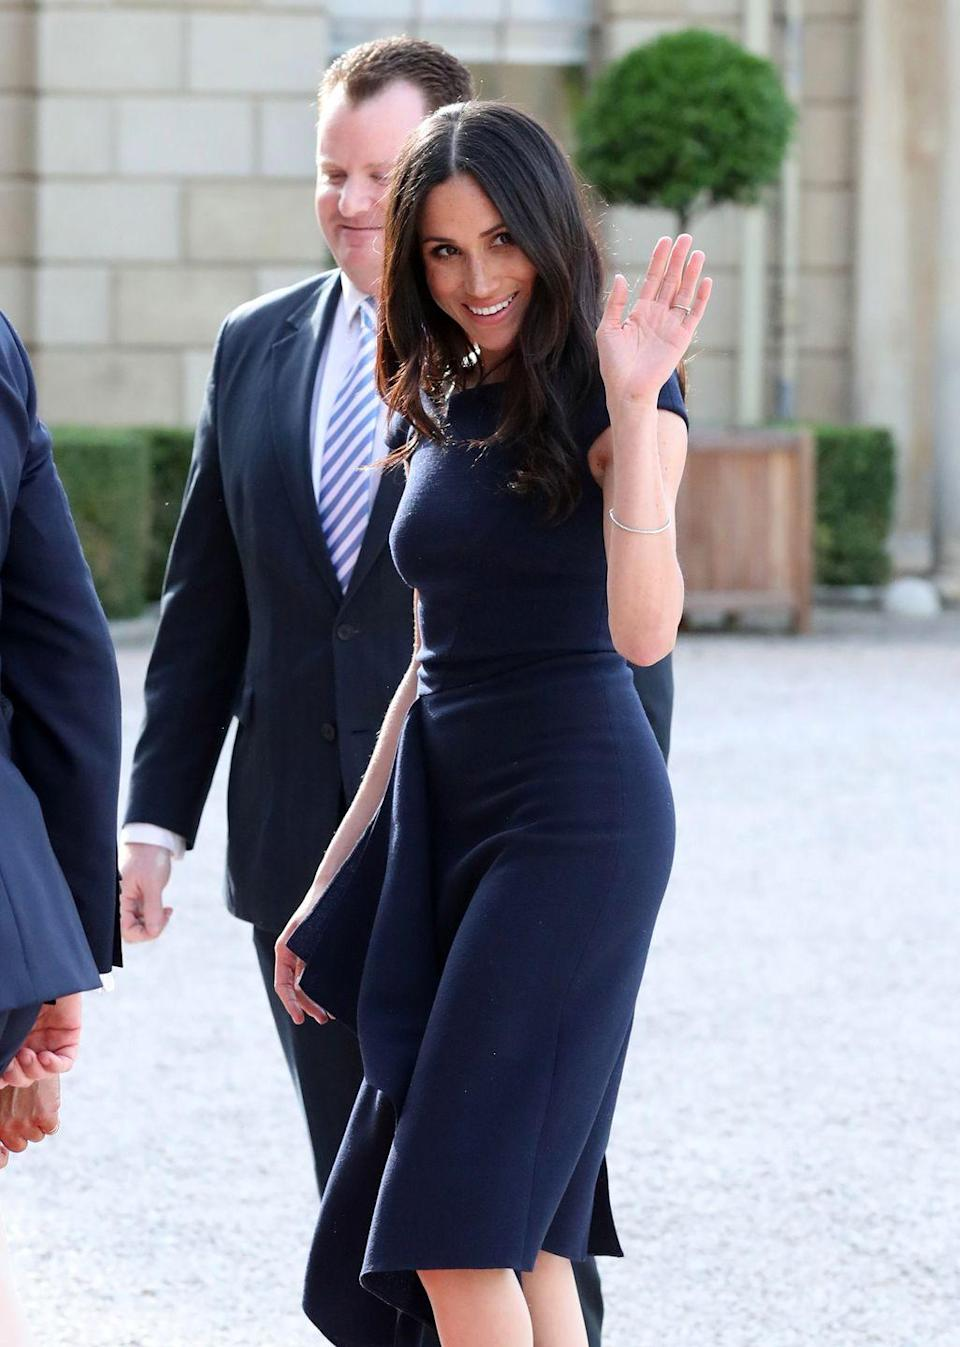 "<p>As for Meghan, the <a href=""https://www.cosmopolitan.com/entertainment/a20746787/meghan-markle-doria-ragland-royal-wedding-rehearsal/"" rel=""nofollow noopener"" target=""_blank"" data-ylk=""slk:night before her wedding"" class=""link rapid-noclick-resp"">night before her wedding</a> she opted for a similar navy dress. Classic.</p>"